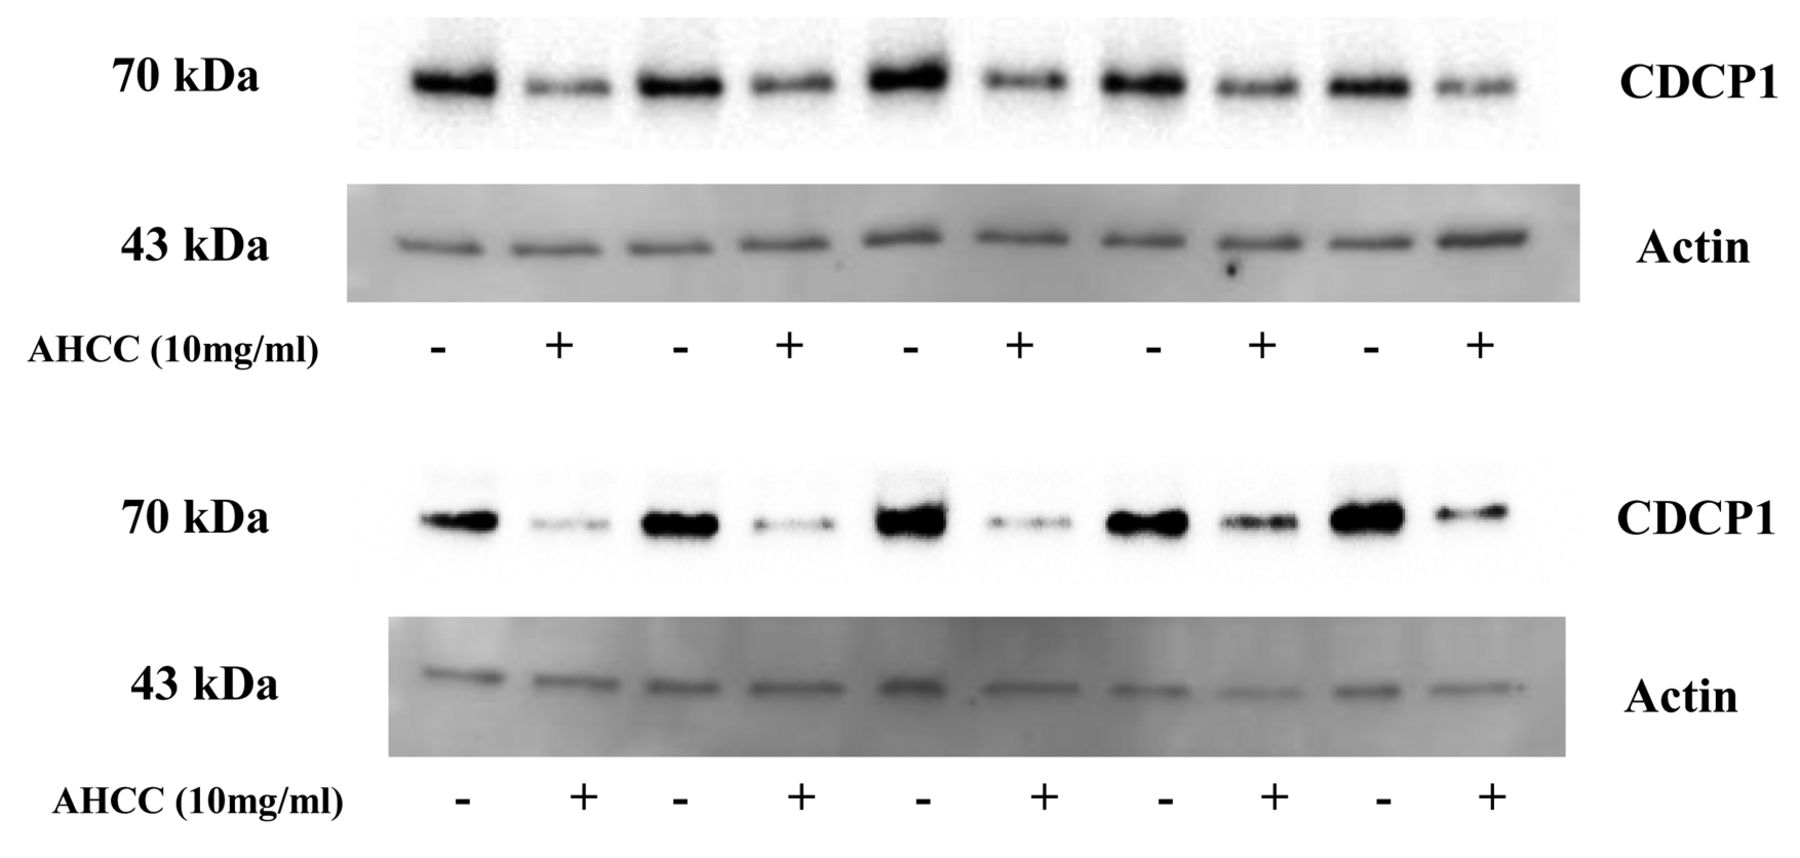 CUB Domain-containing Protein 1 (CDCP1) Is Down-regulated by